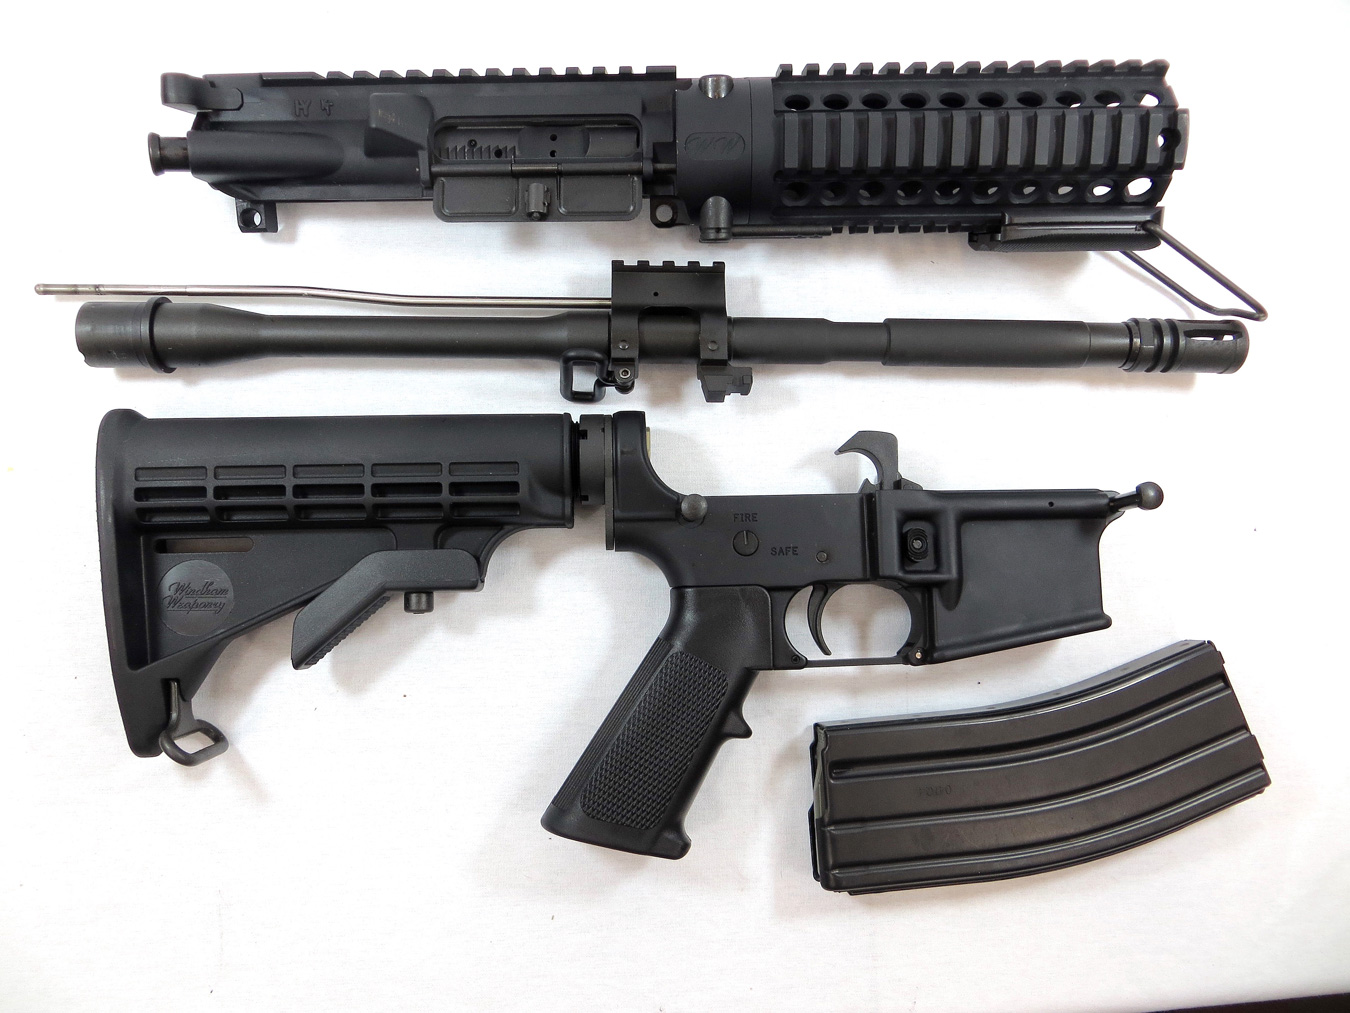 Windham takedown AR-15 disassembled